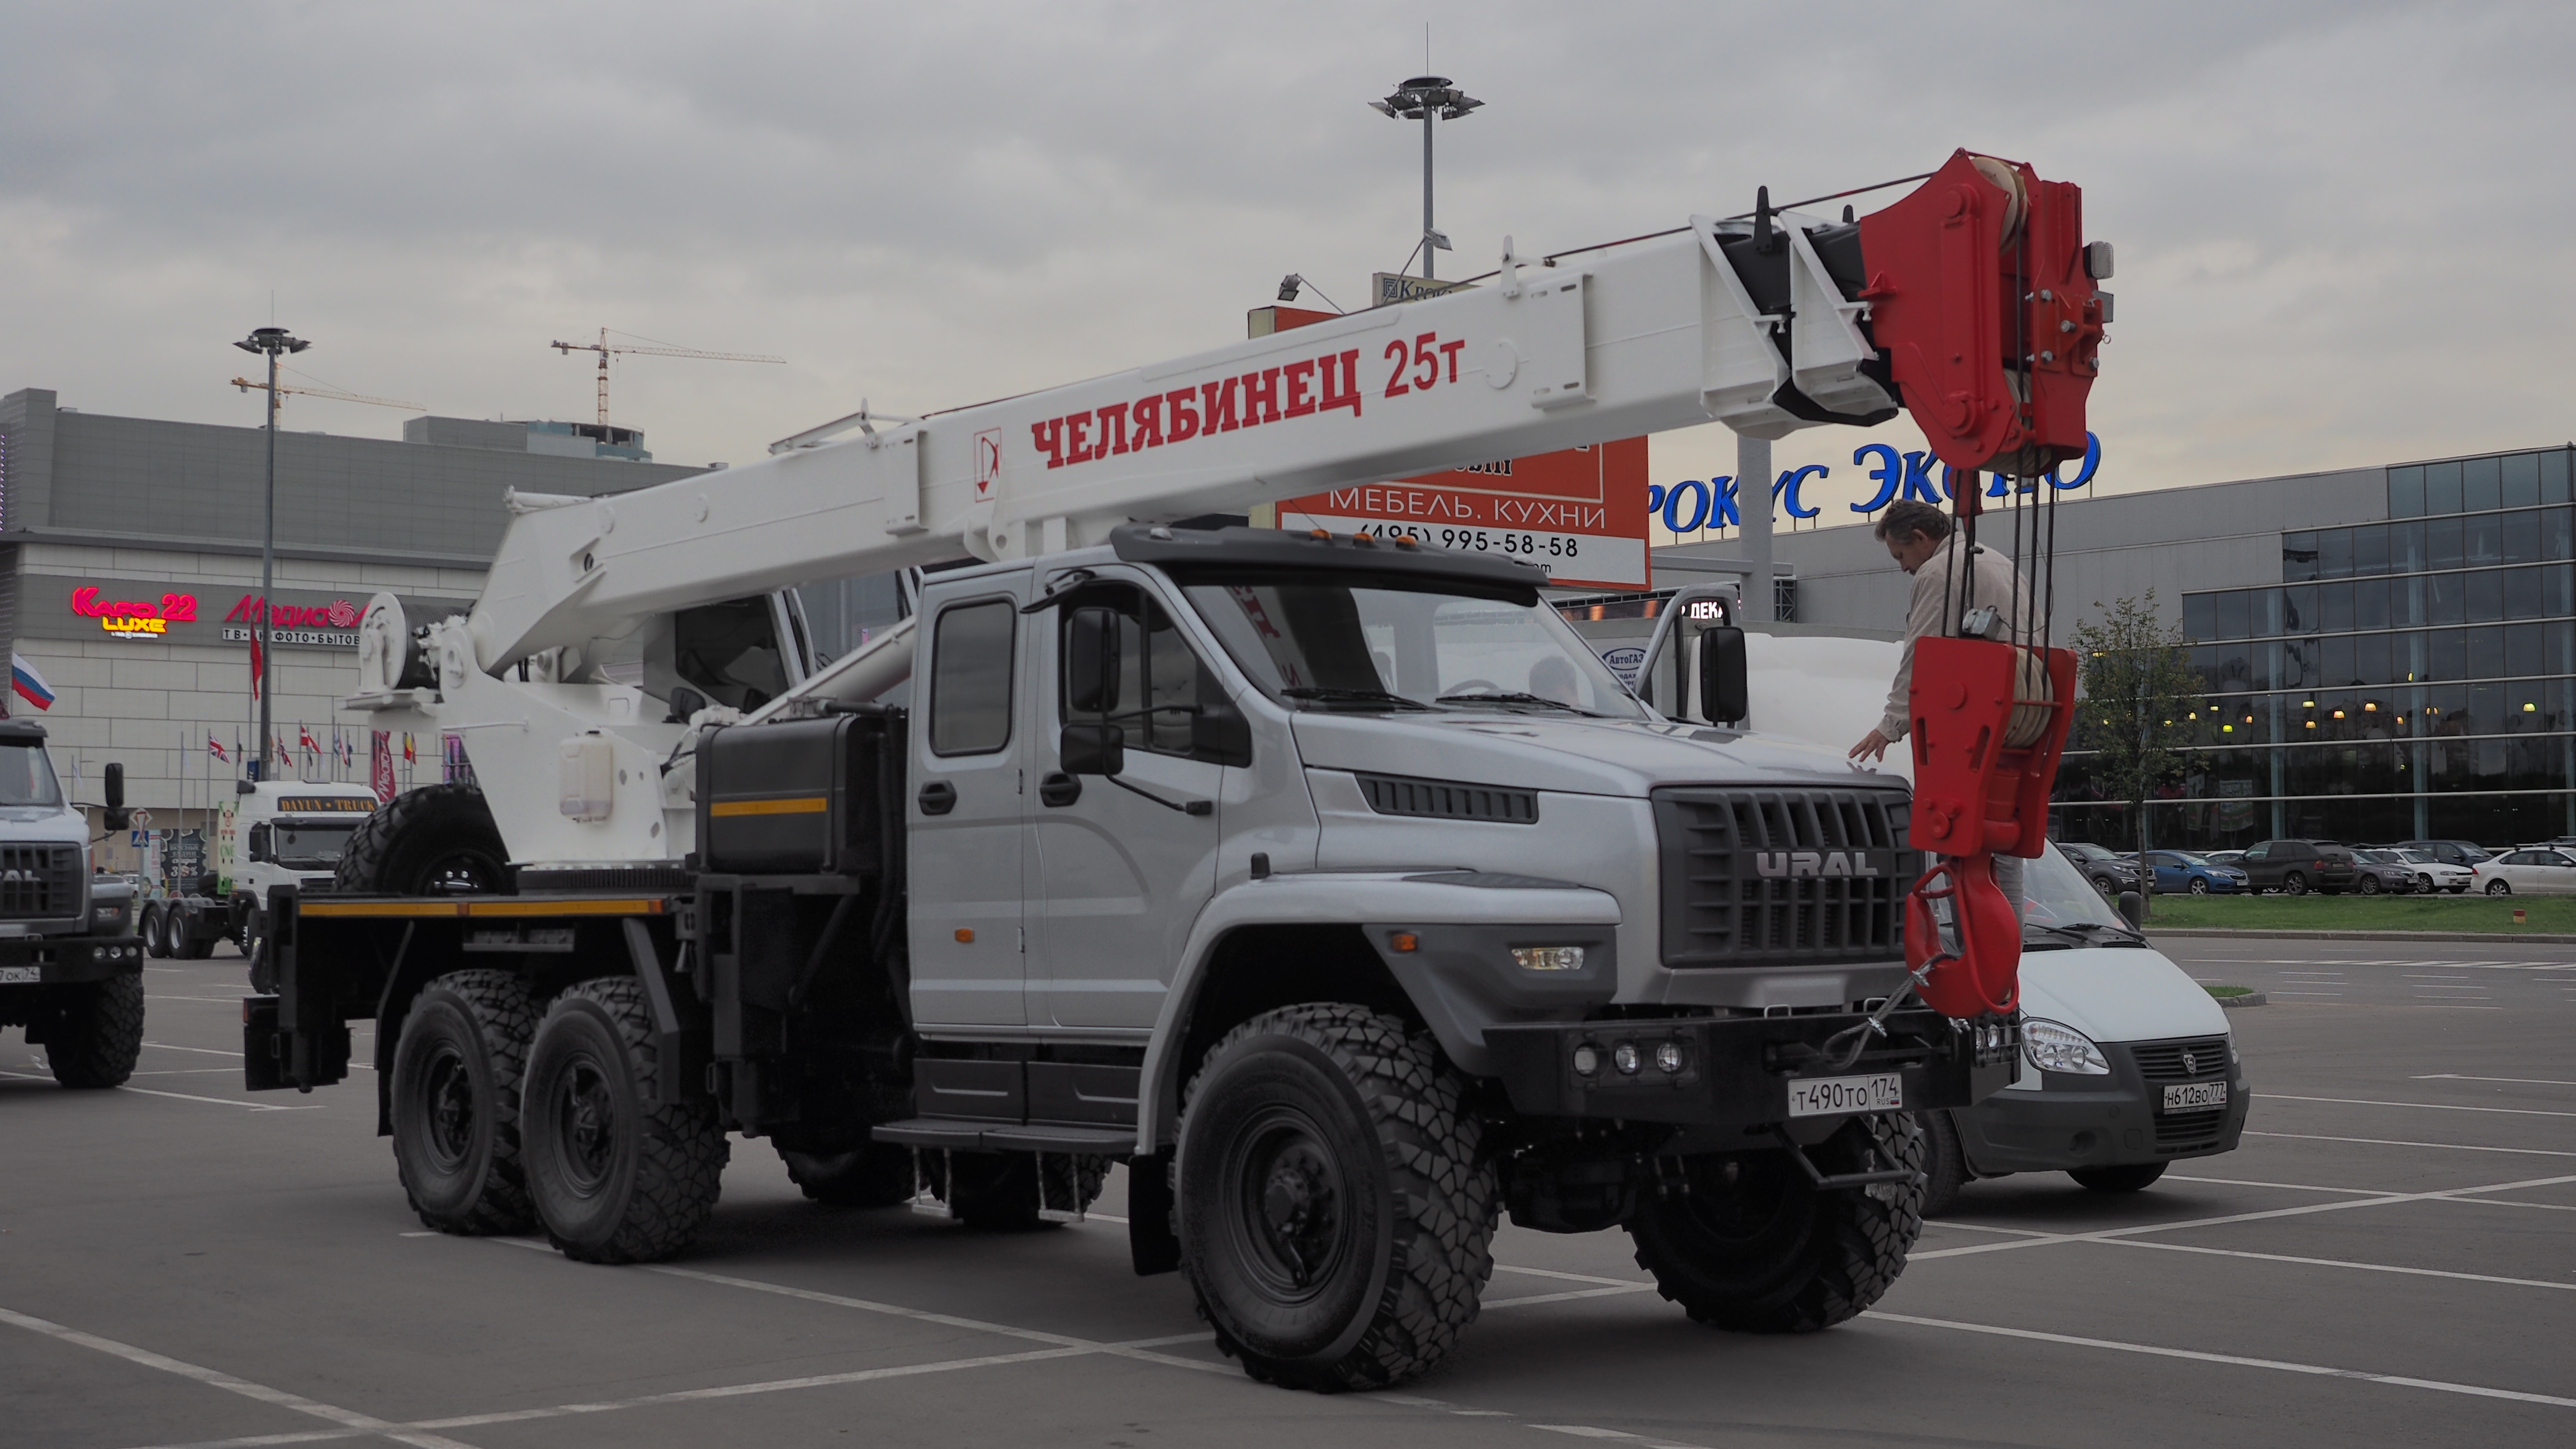 Datei:Ural Next mobile crane with double cab.jpg